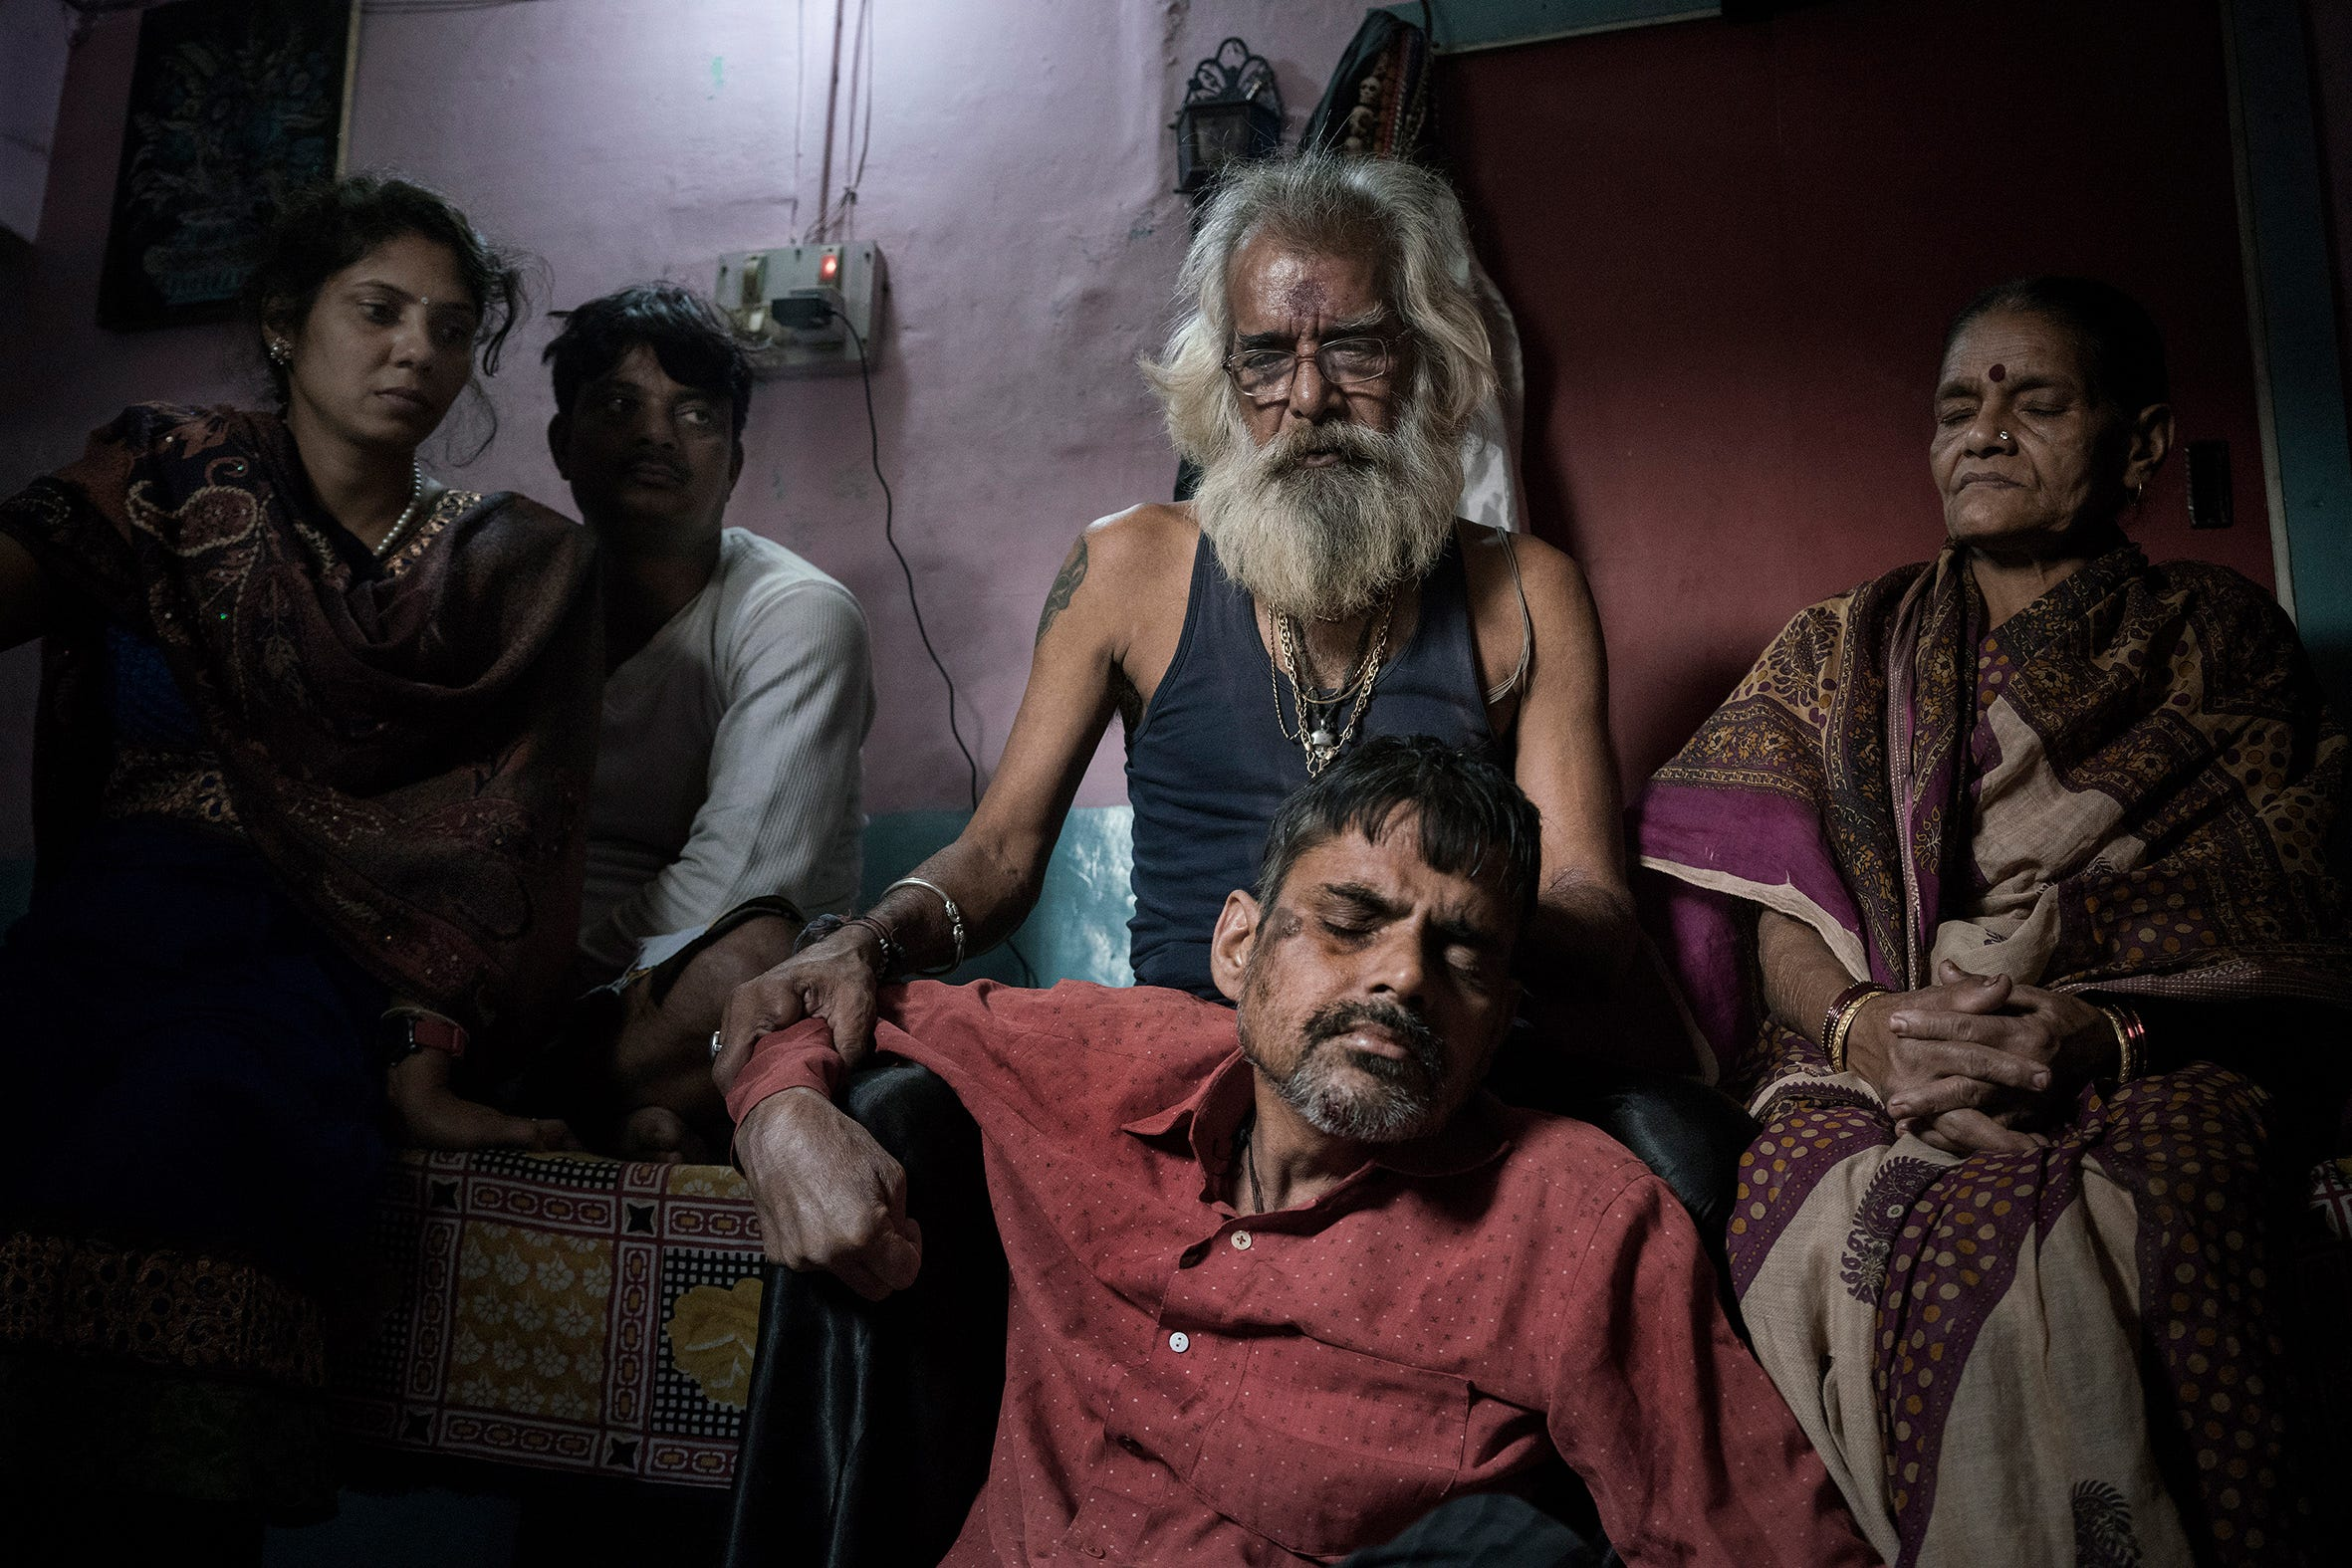 I Spent A Month With India's 'Cannibal Cult'